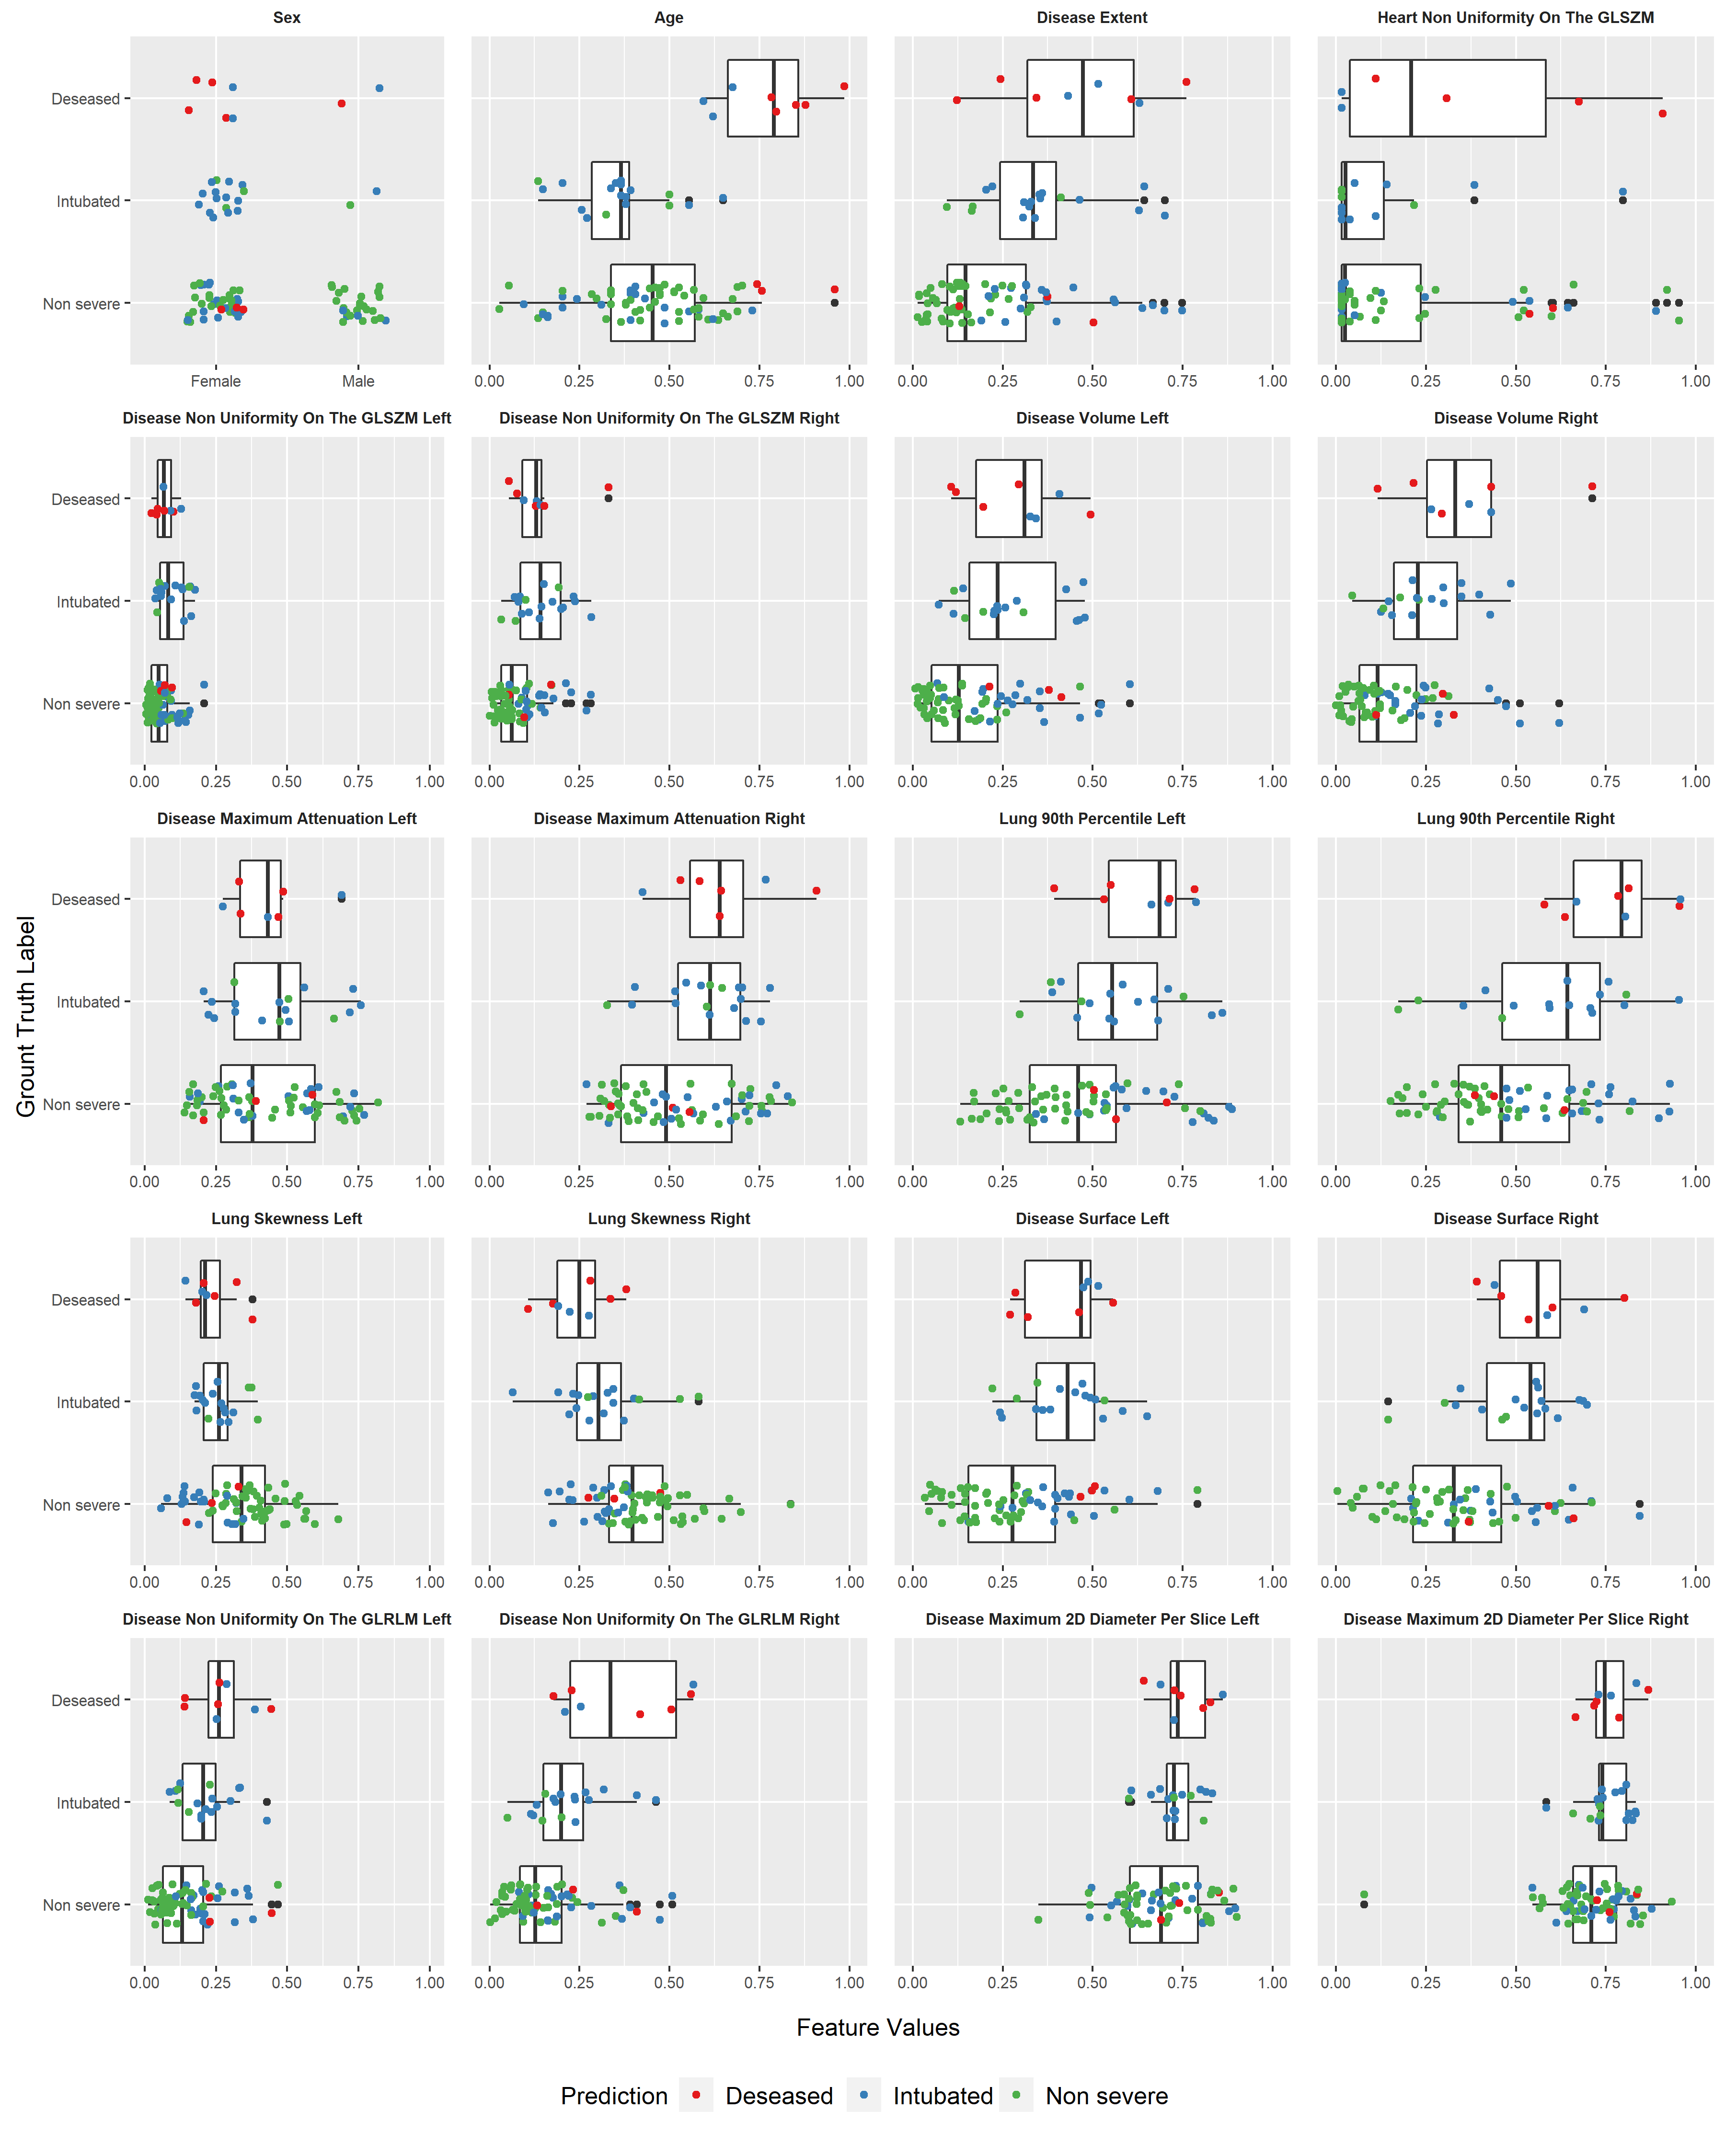 Boxplots of the selected features and their association with the predicted outcomes and ground truth labels.